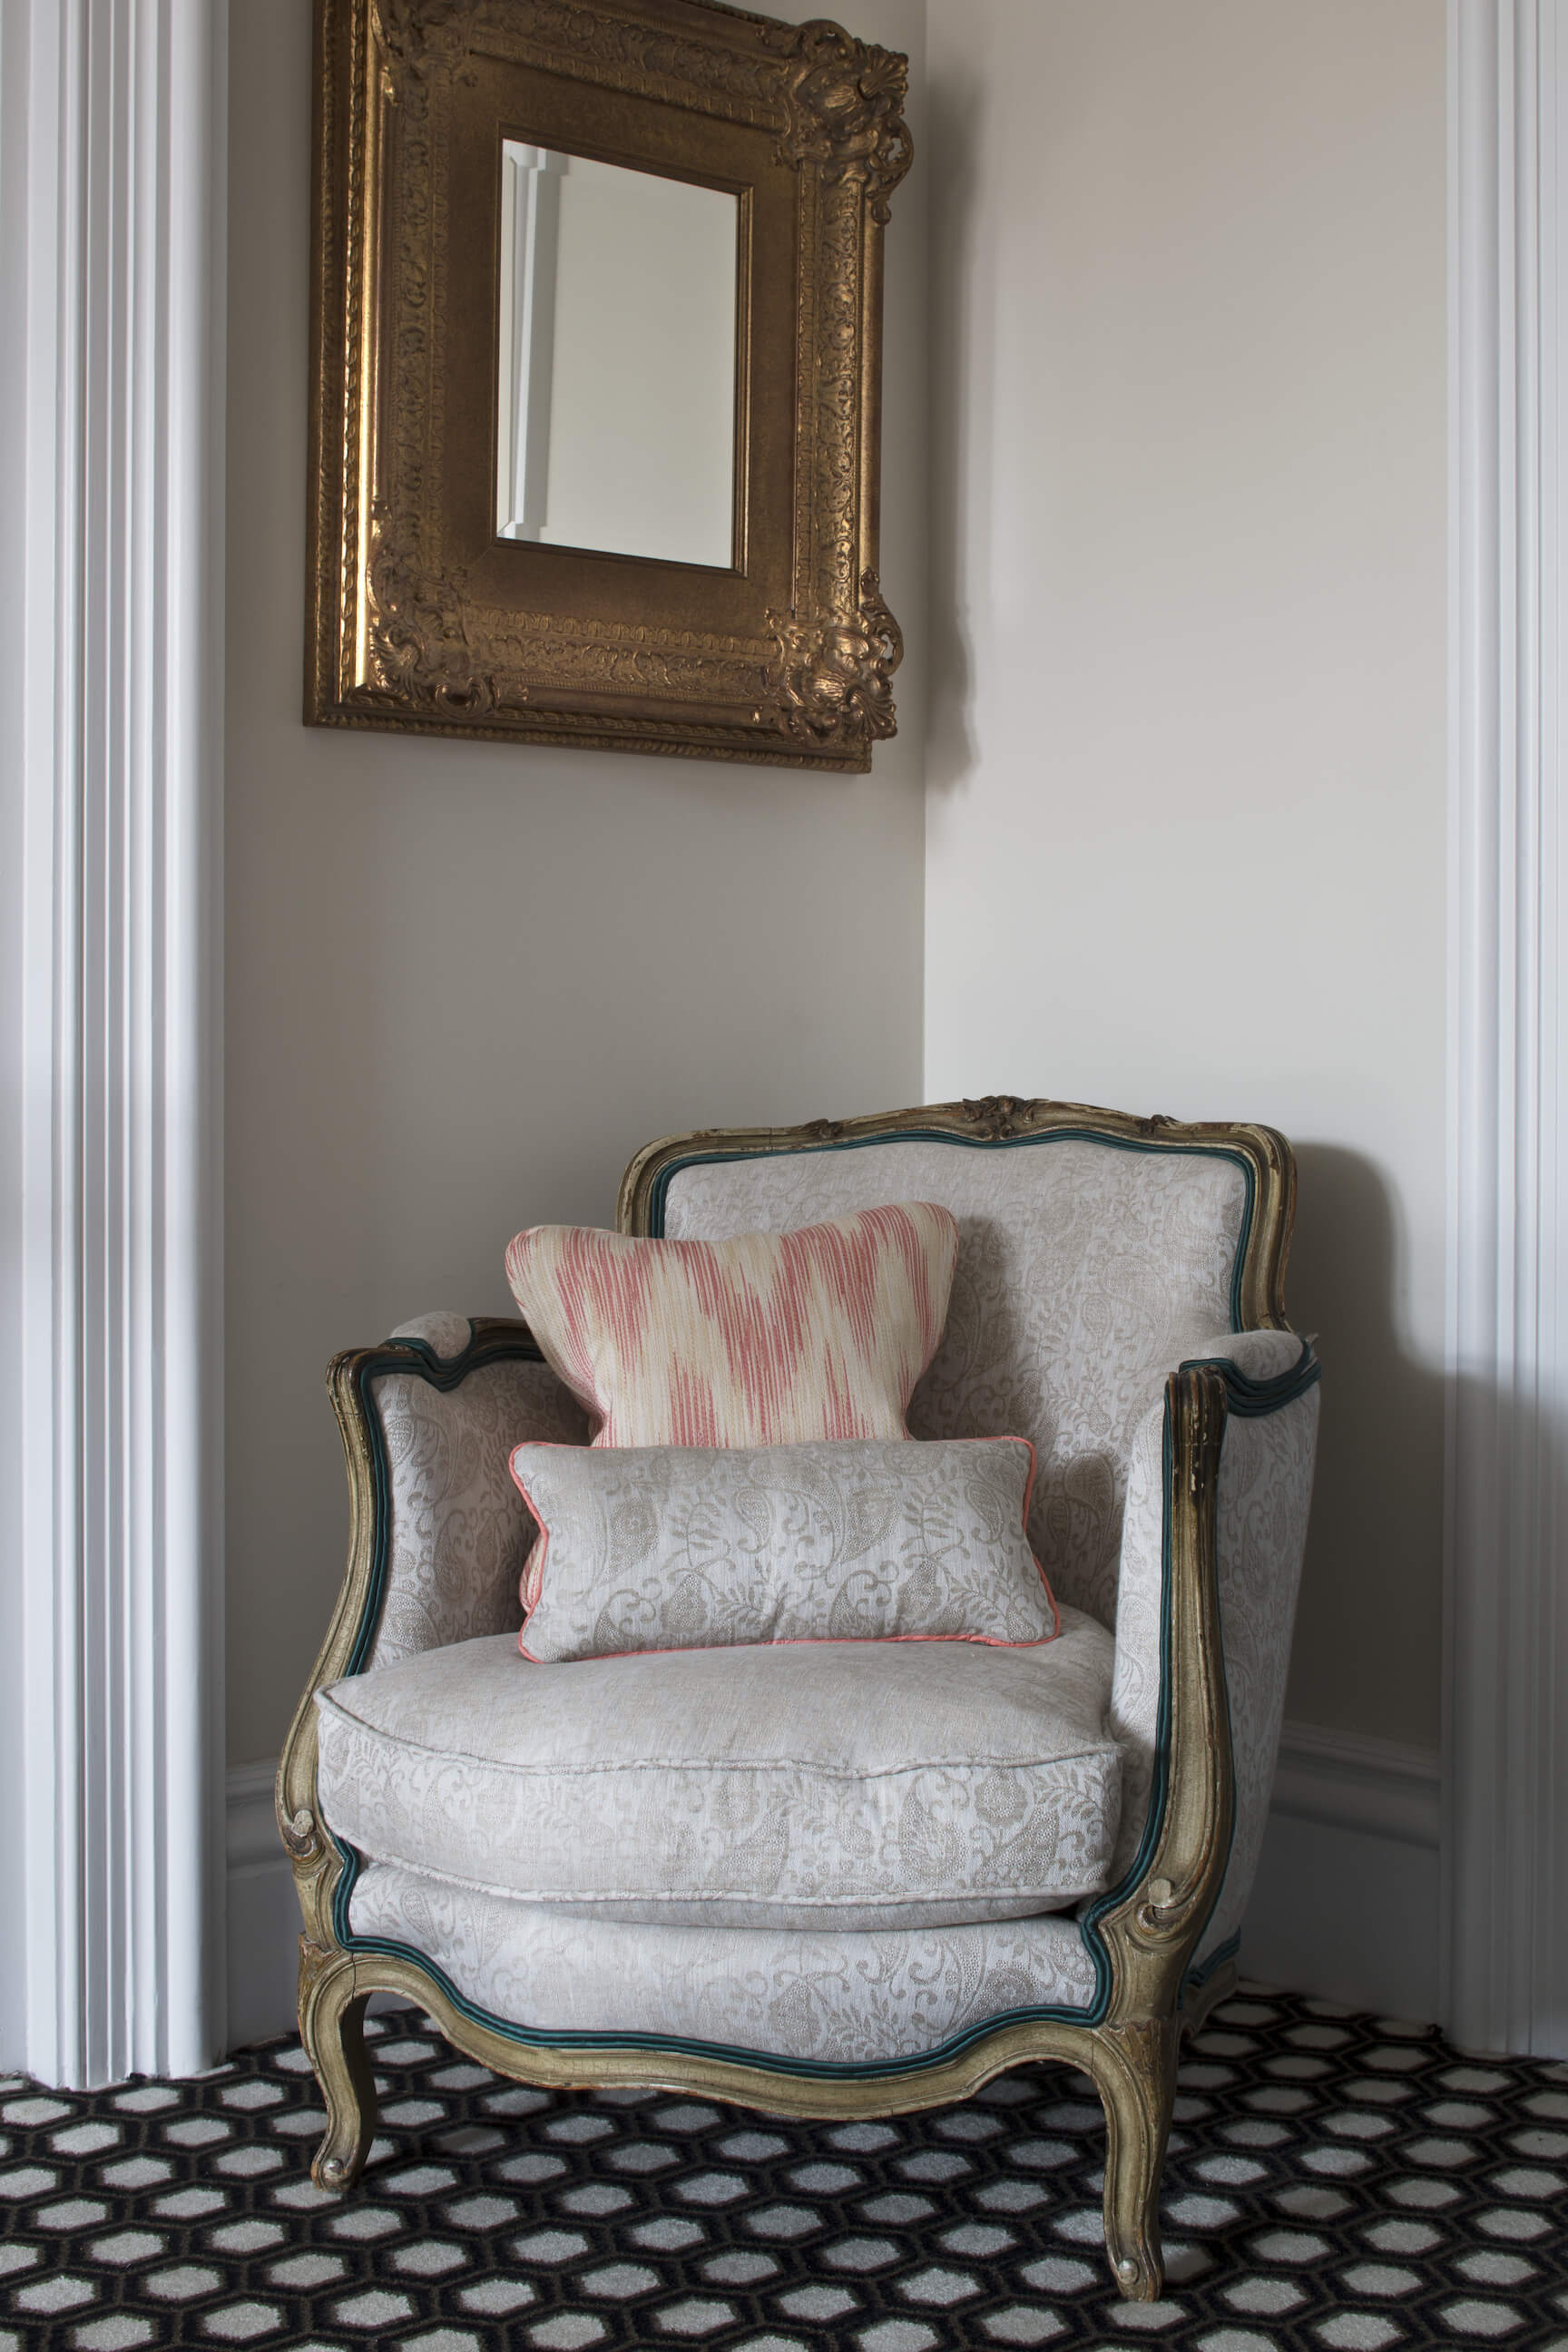 Our final image showcases another ornate corner of the home, featuring this carved wood traditional armchair with floral upholstery, below a richly gold framed mirror.